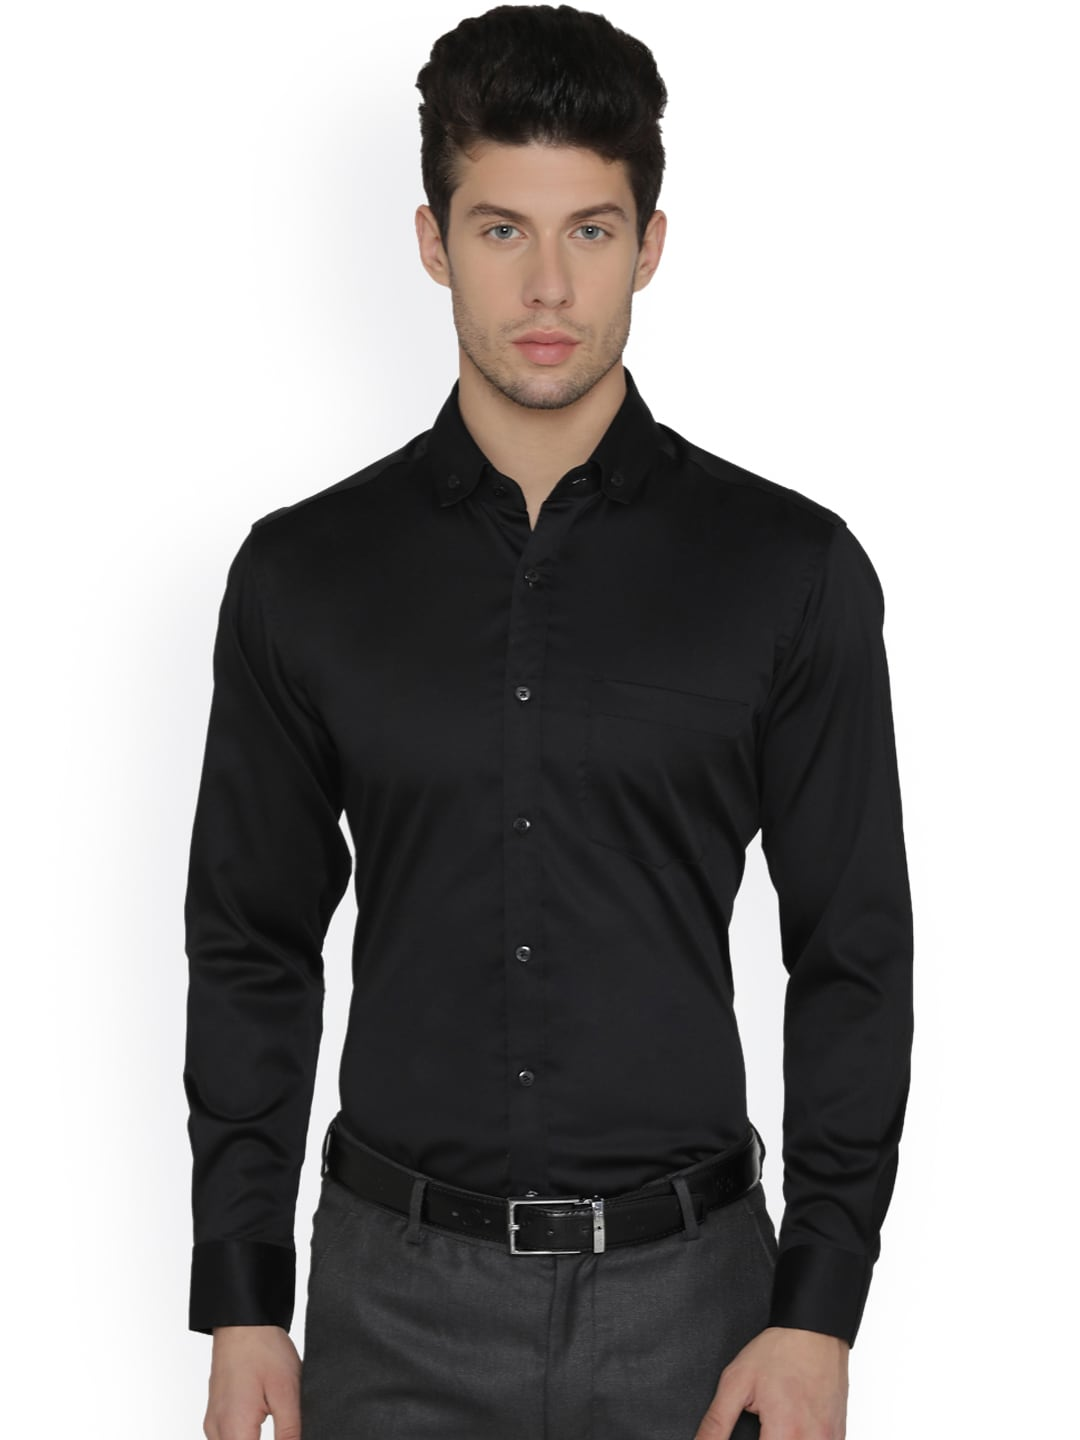 f9517d958f8 Buy Dazzio Men Black Modern Slim Fit Solid Formal Shirt - Shirts for ...